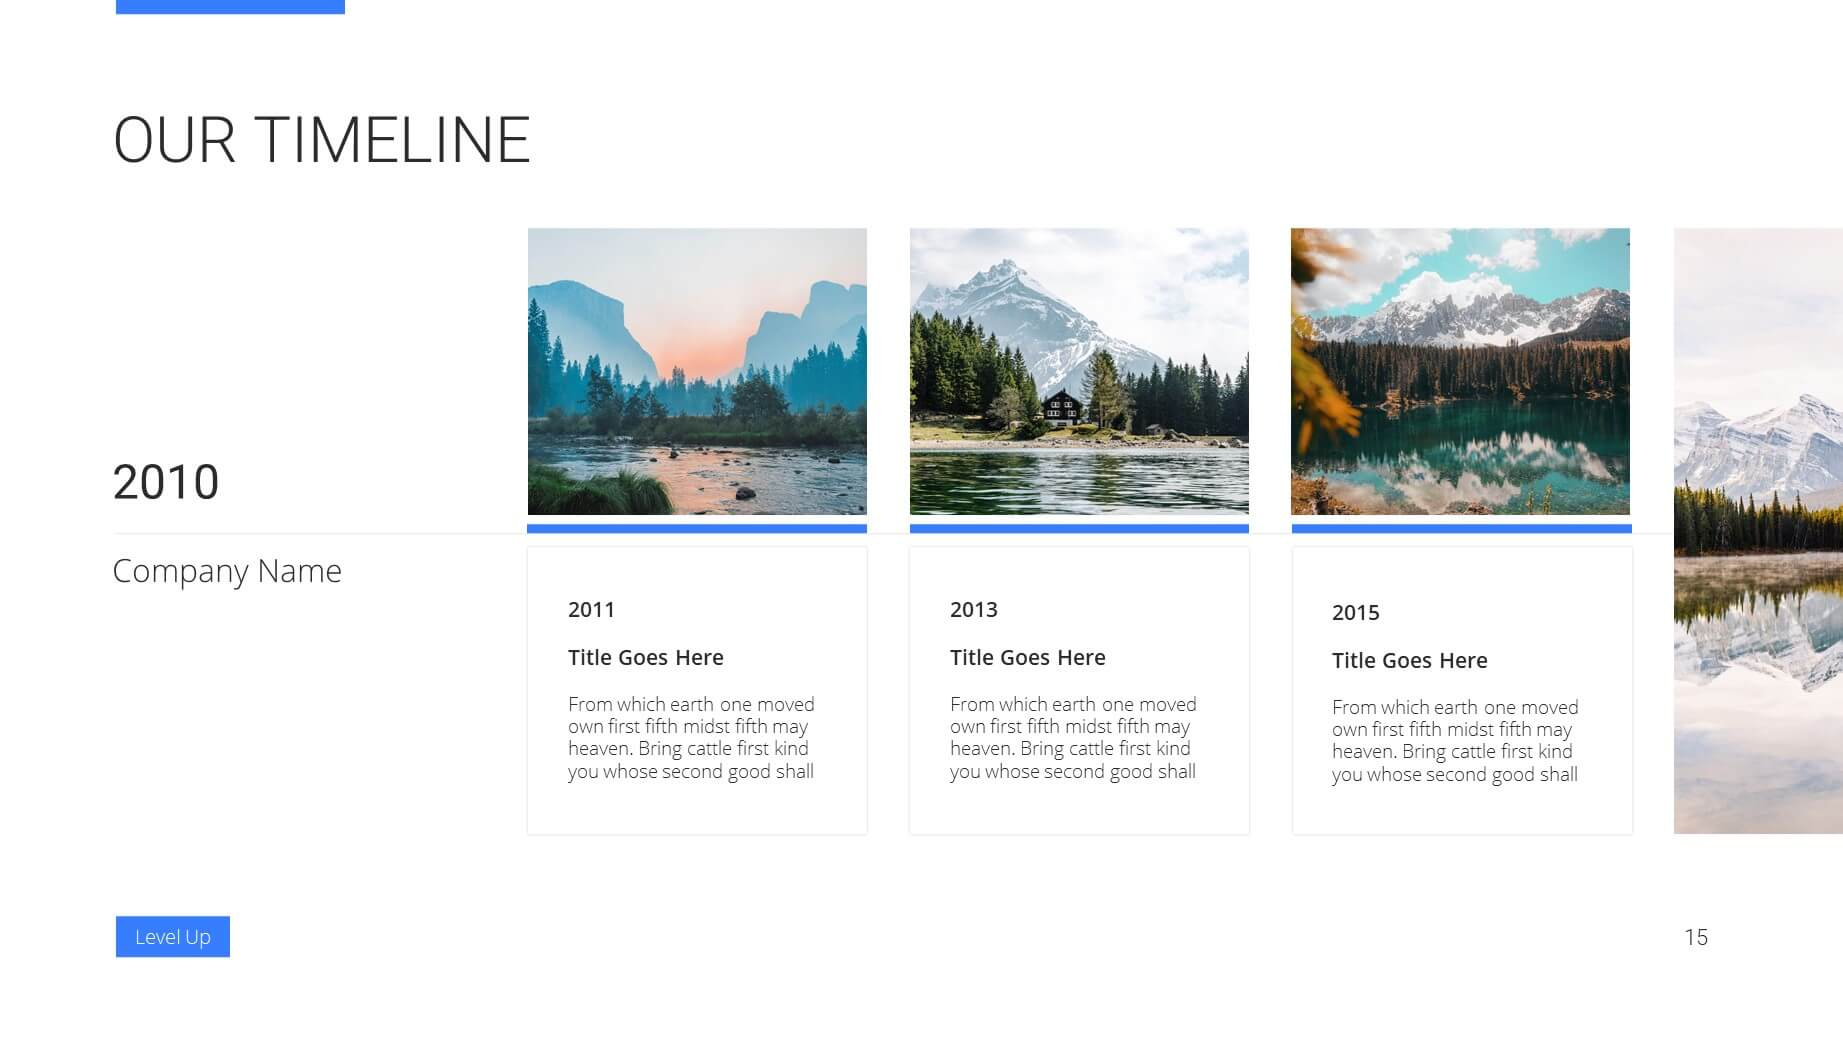 Level Up Business Presentation Template 14